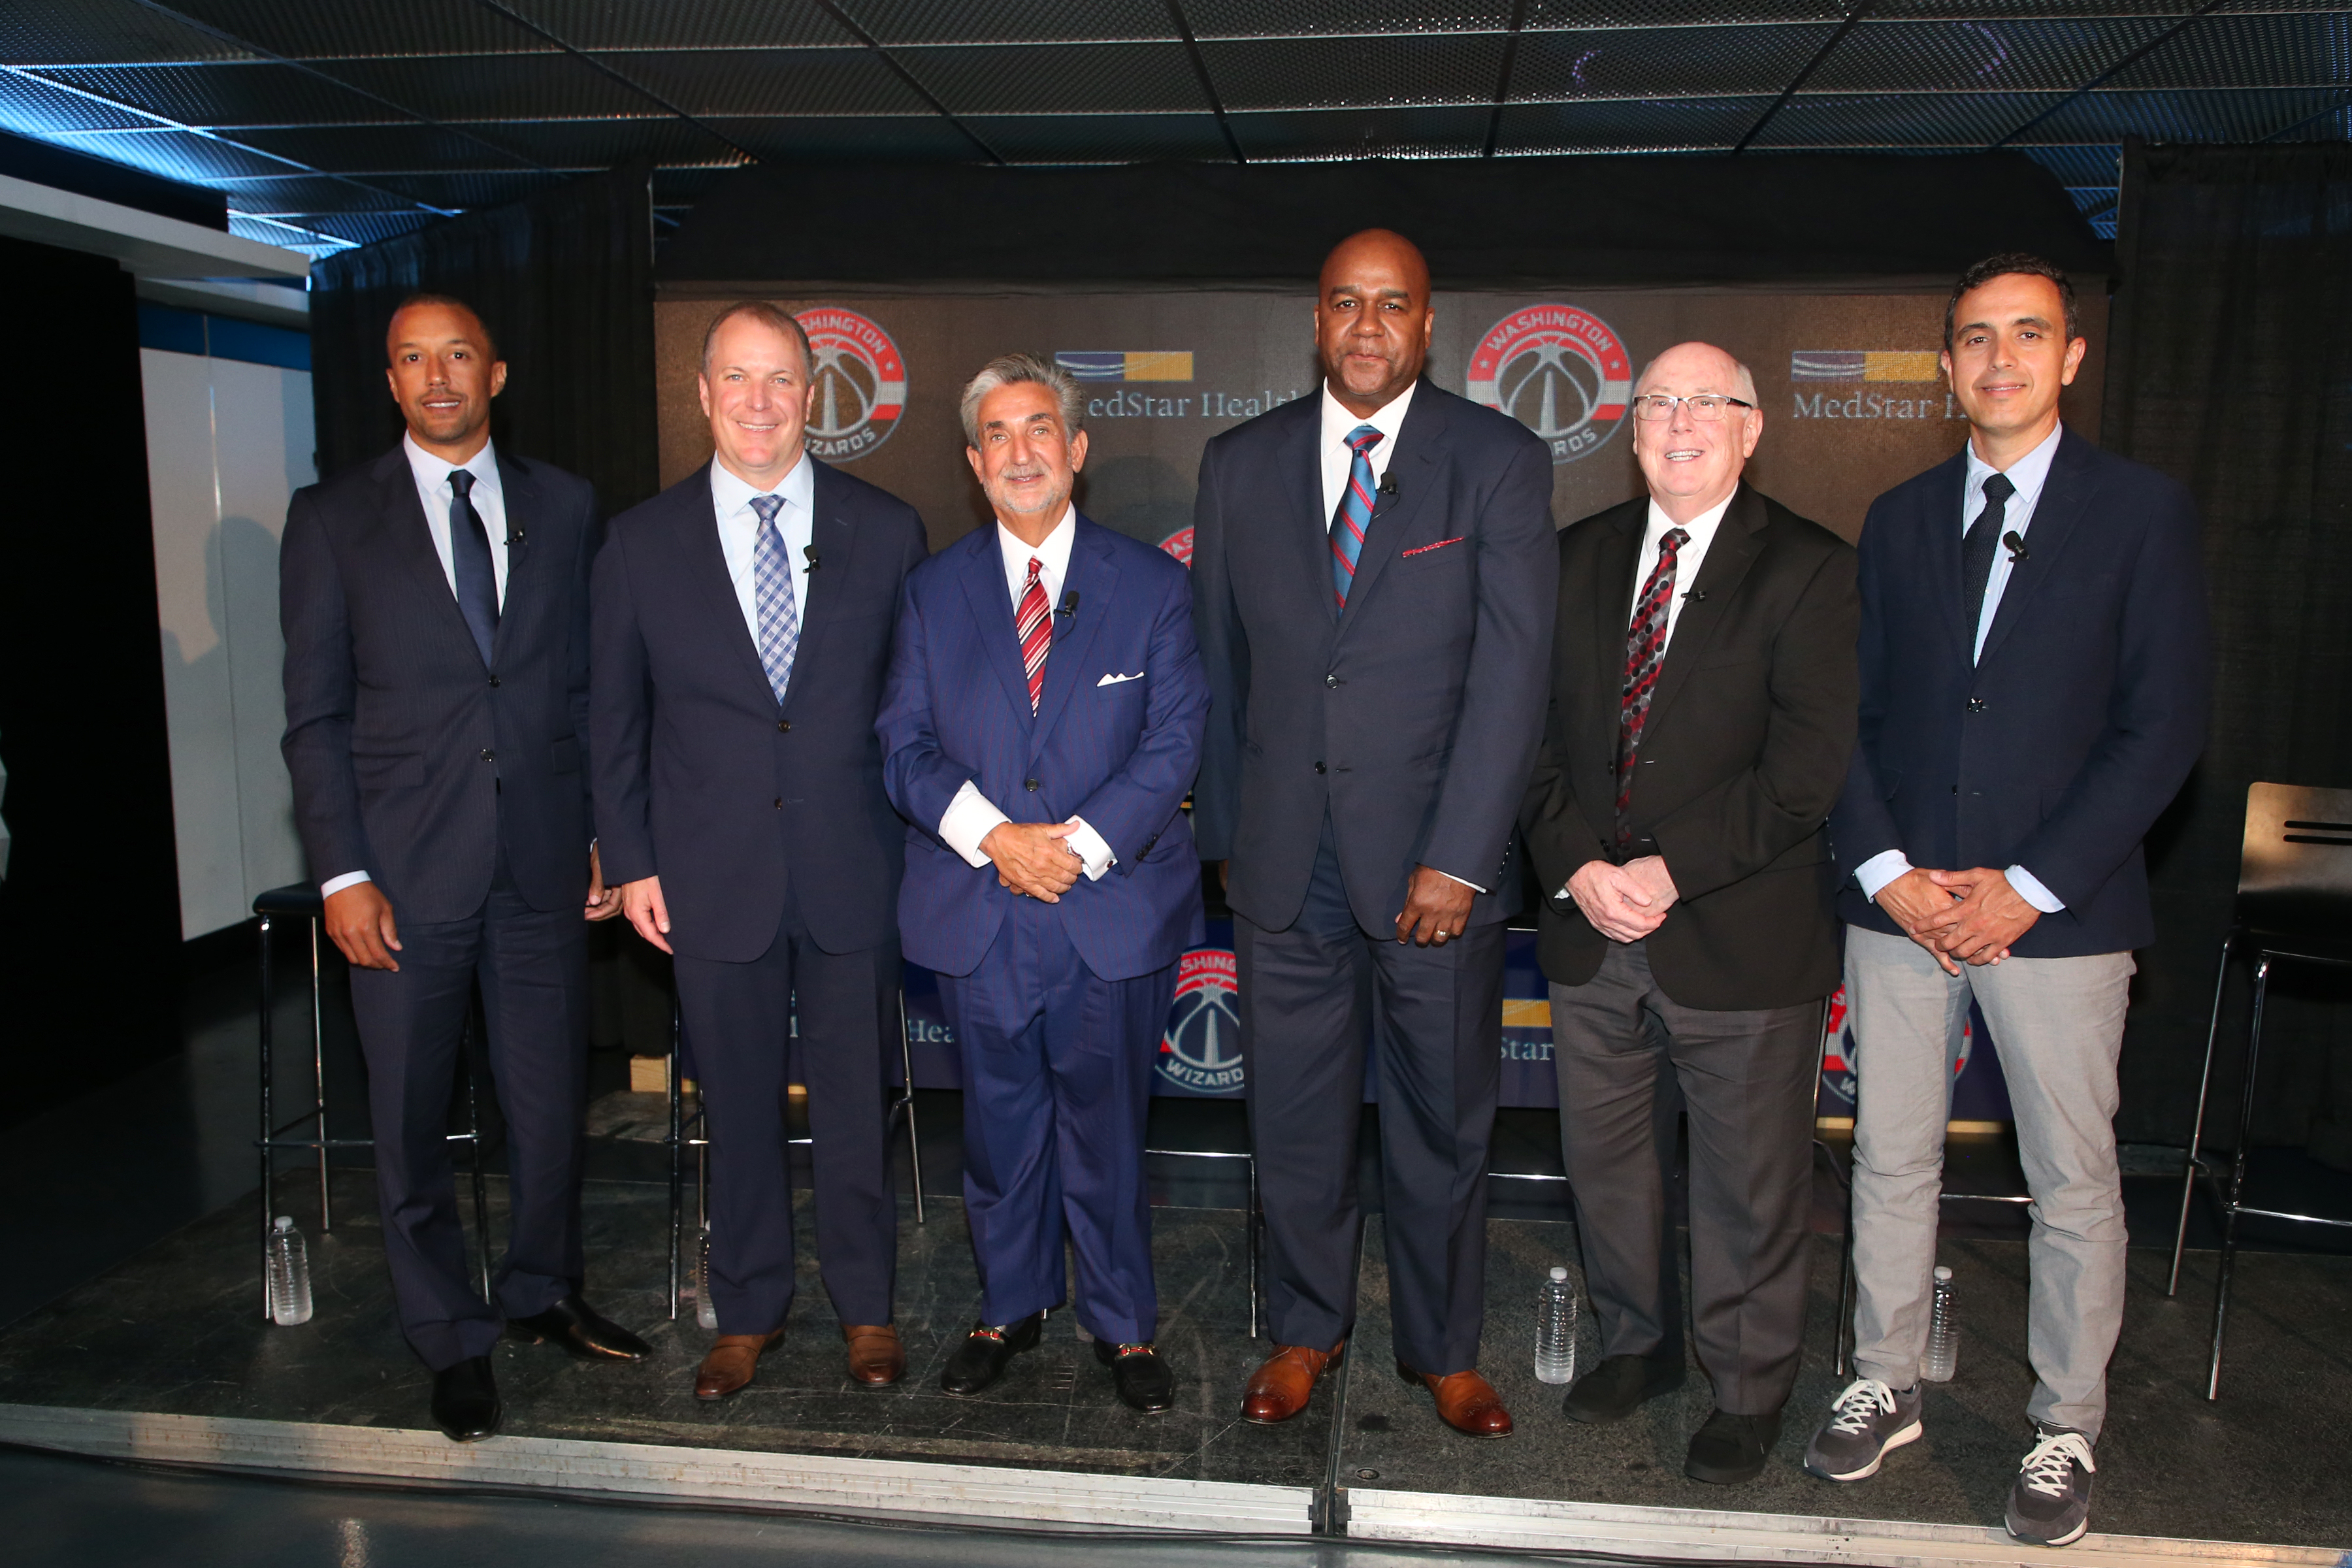 Monumental Basketball Introductory Press Conference